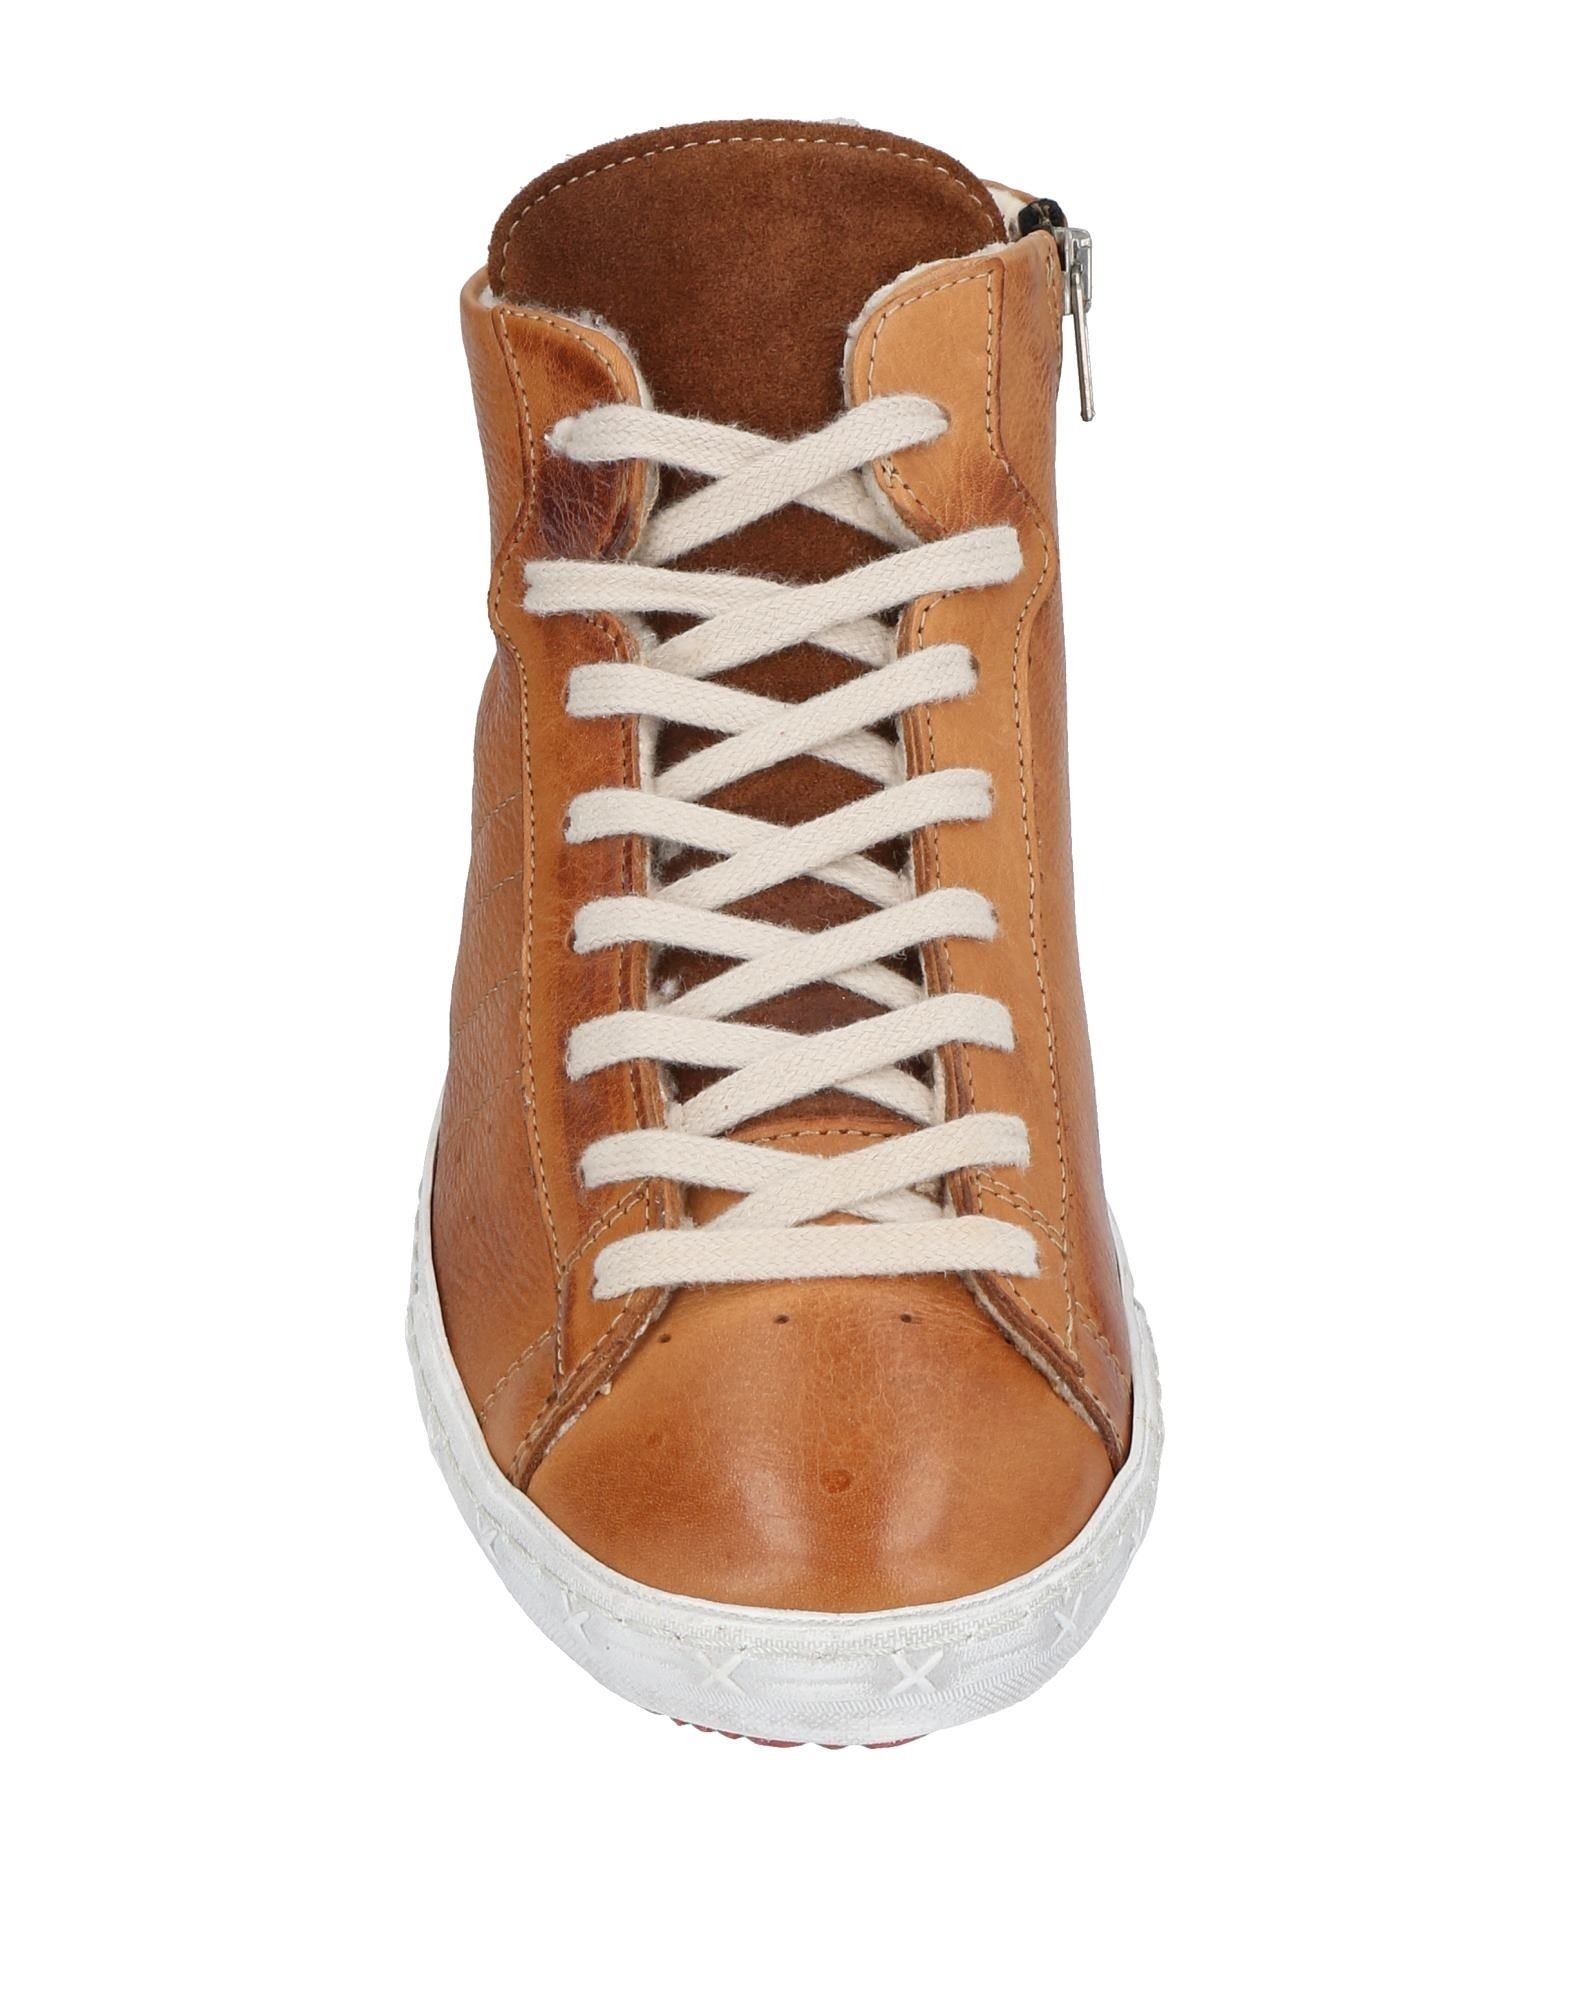 11468765RD Selected Sneakers Herren  11468765RD  69dbbf